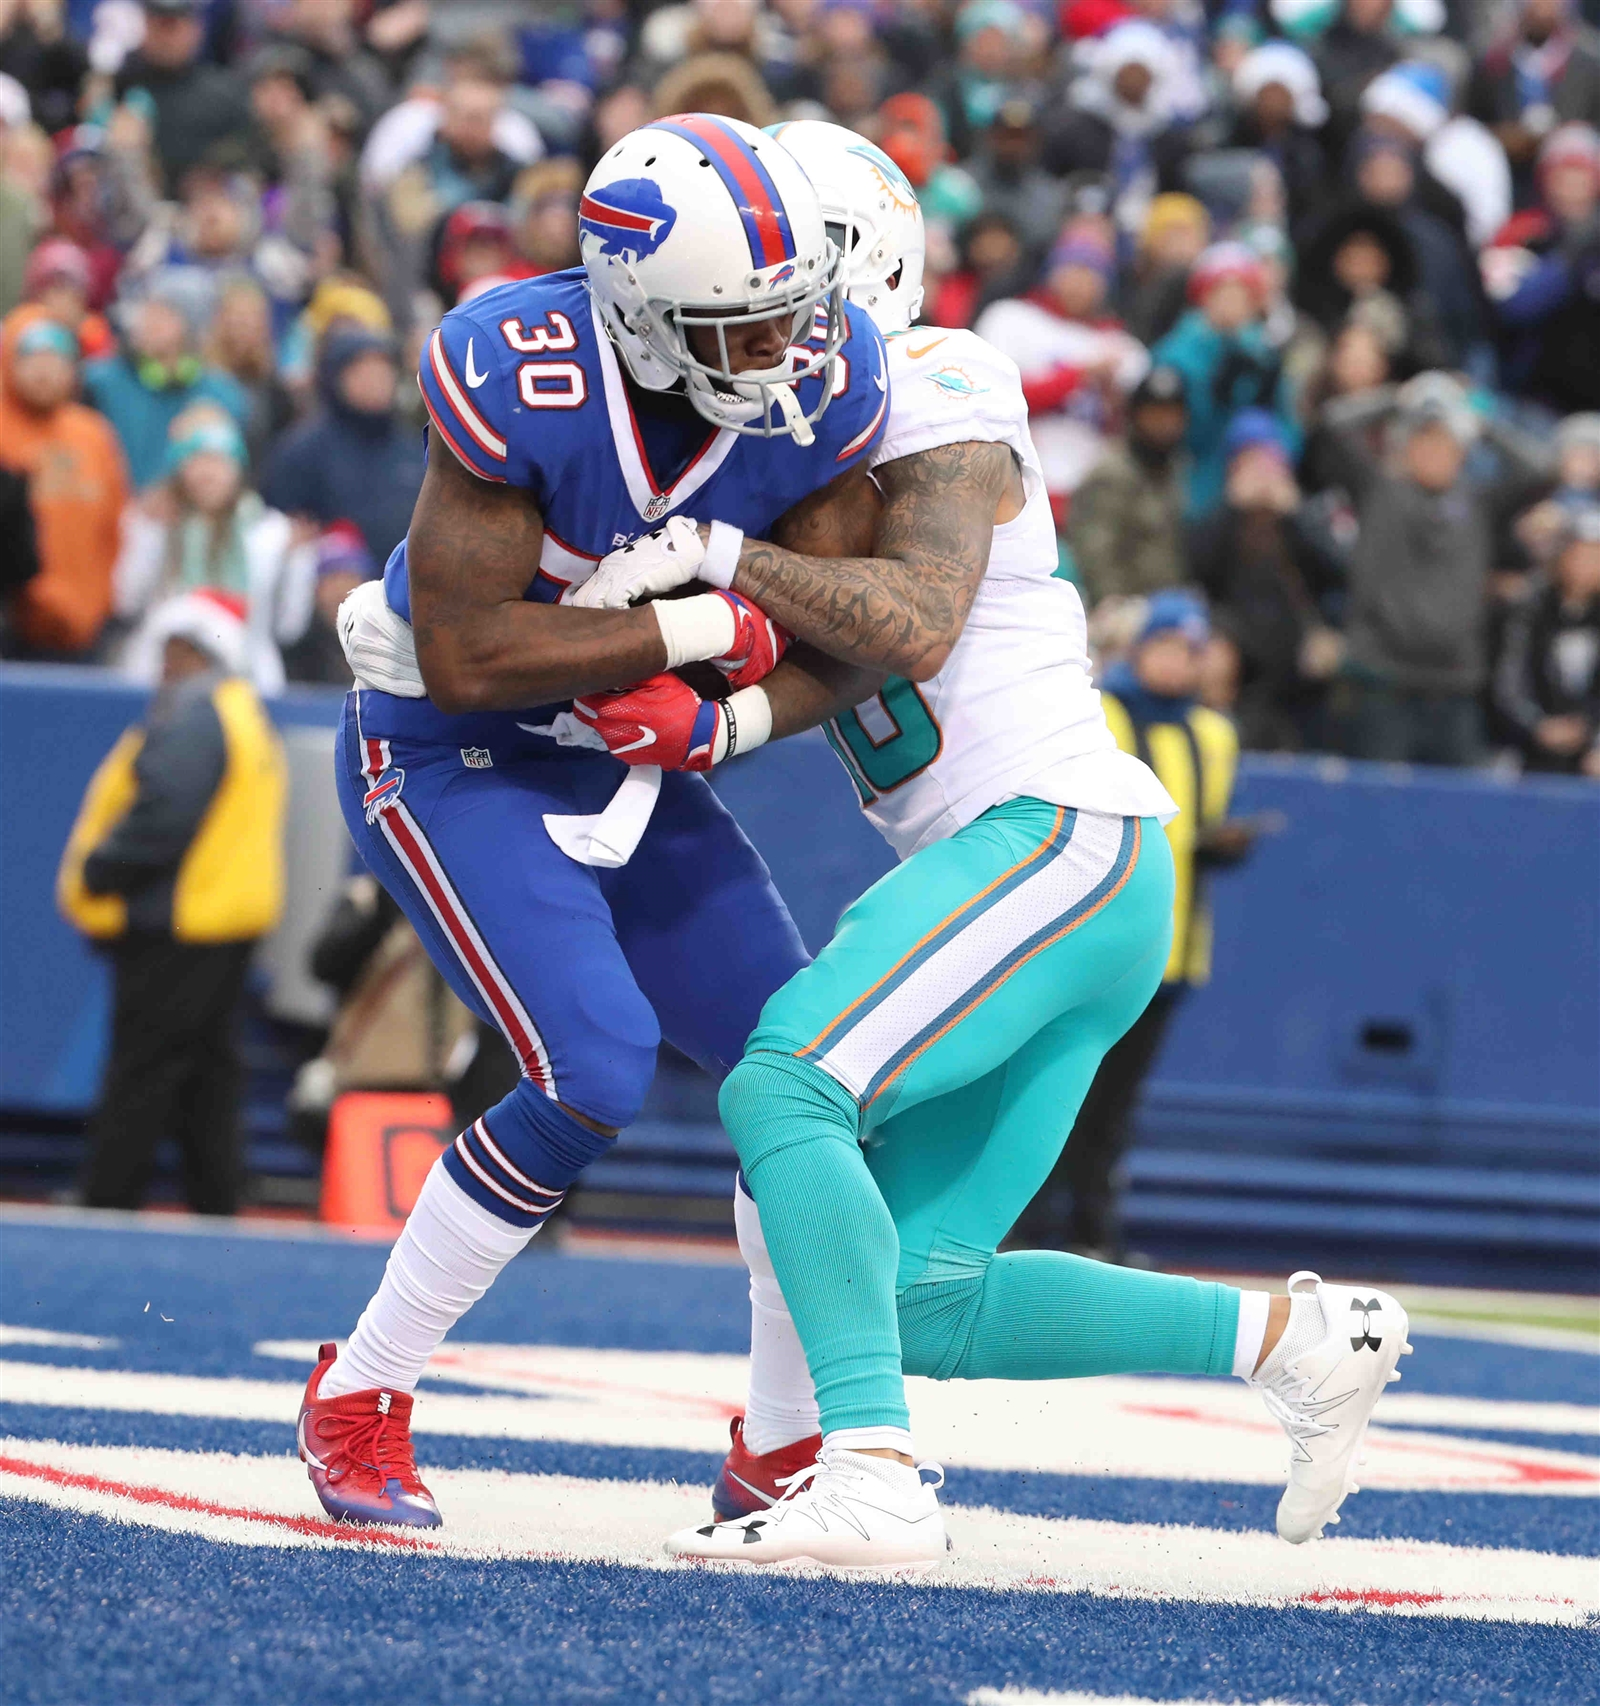 Bills cornerback Corey White intercepts the ball in the second quarter Saturday against the Dolphins.